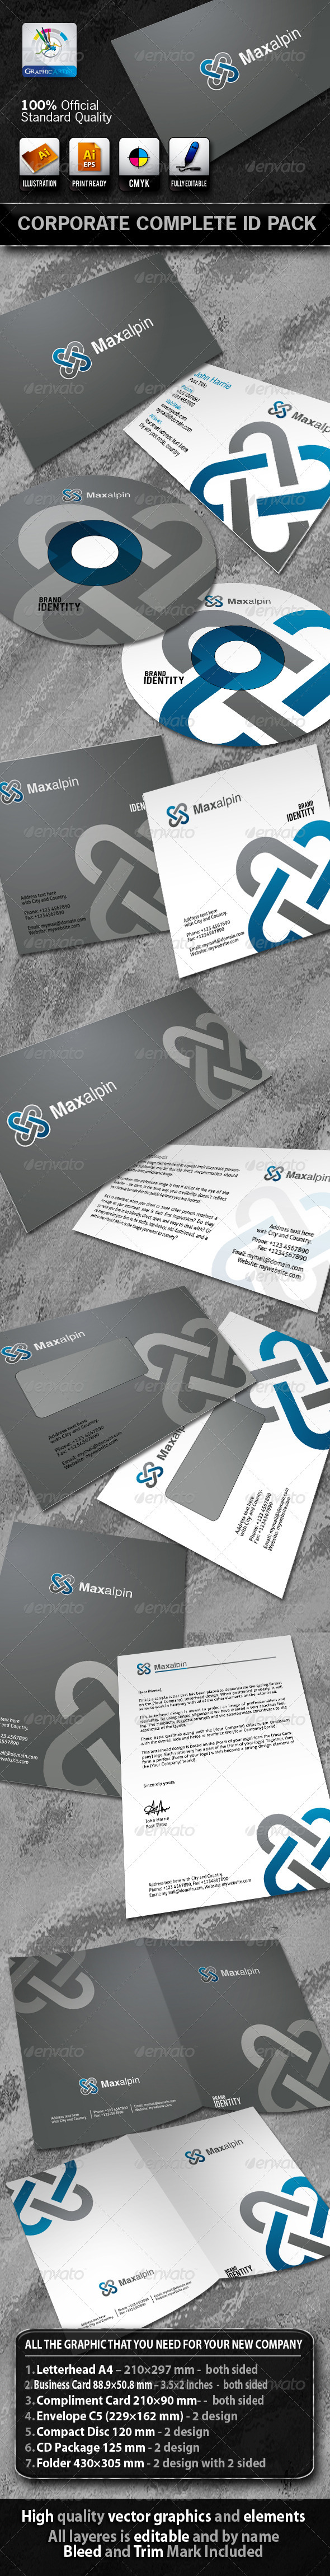 Maxalpin Business Corporate ID Pack With Logo - Stationery Print Templates